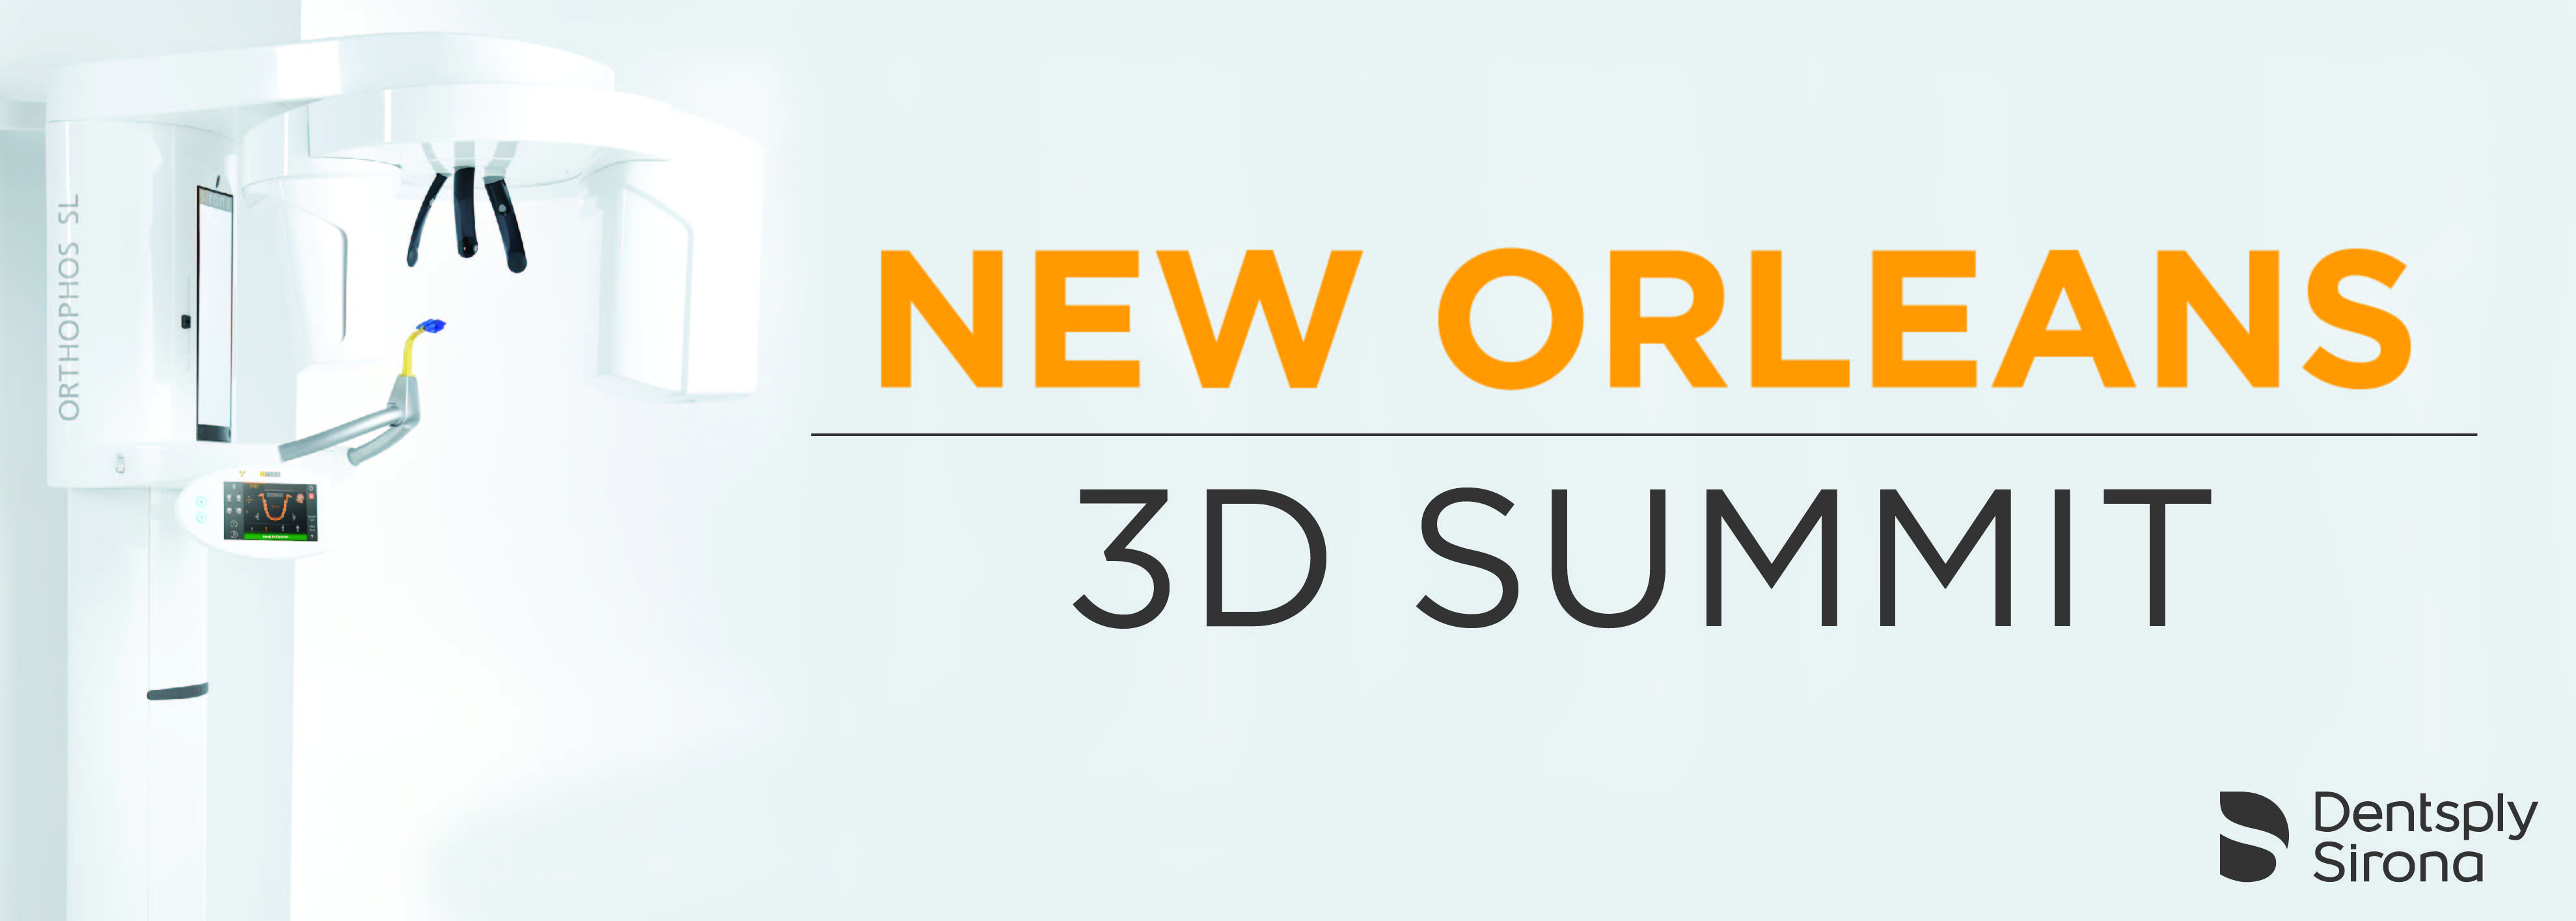 New Orleans 3D Summit